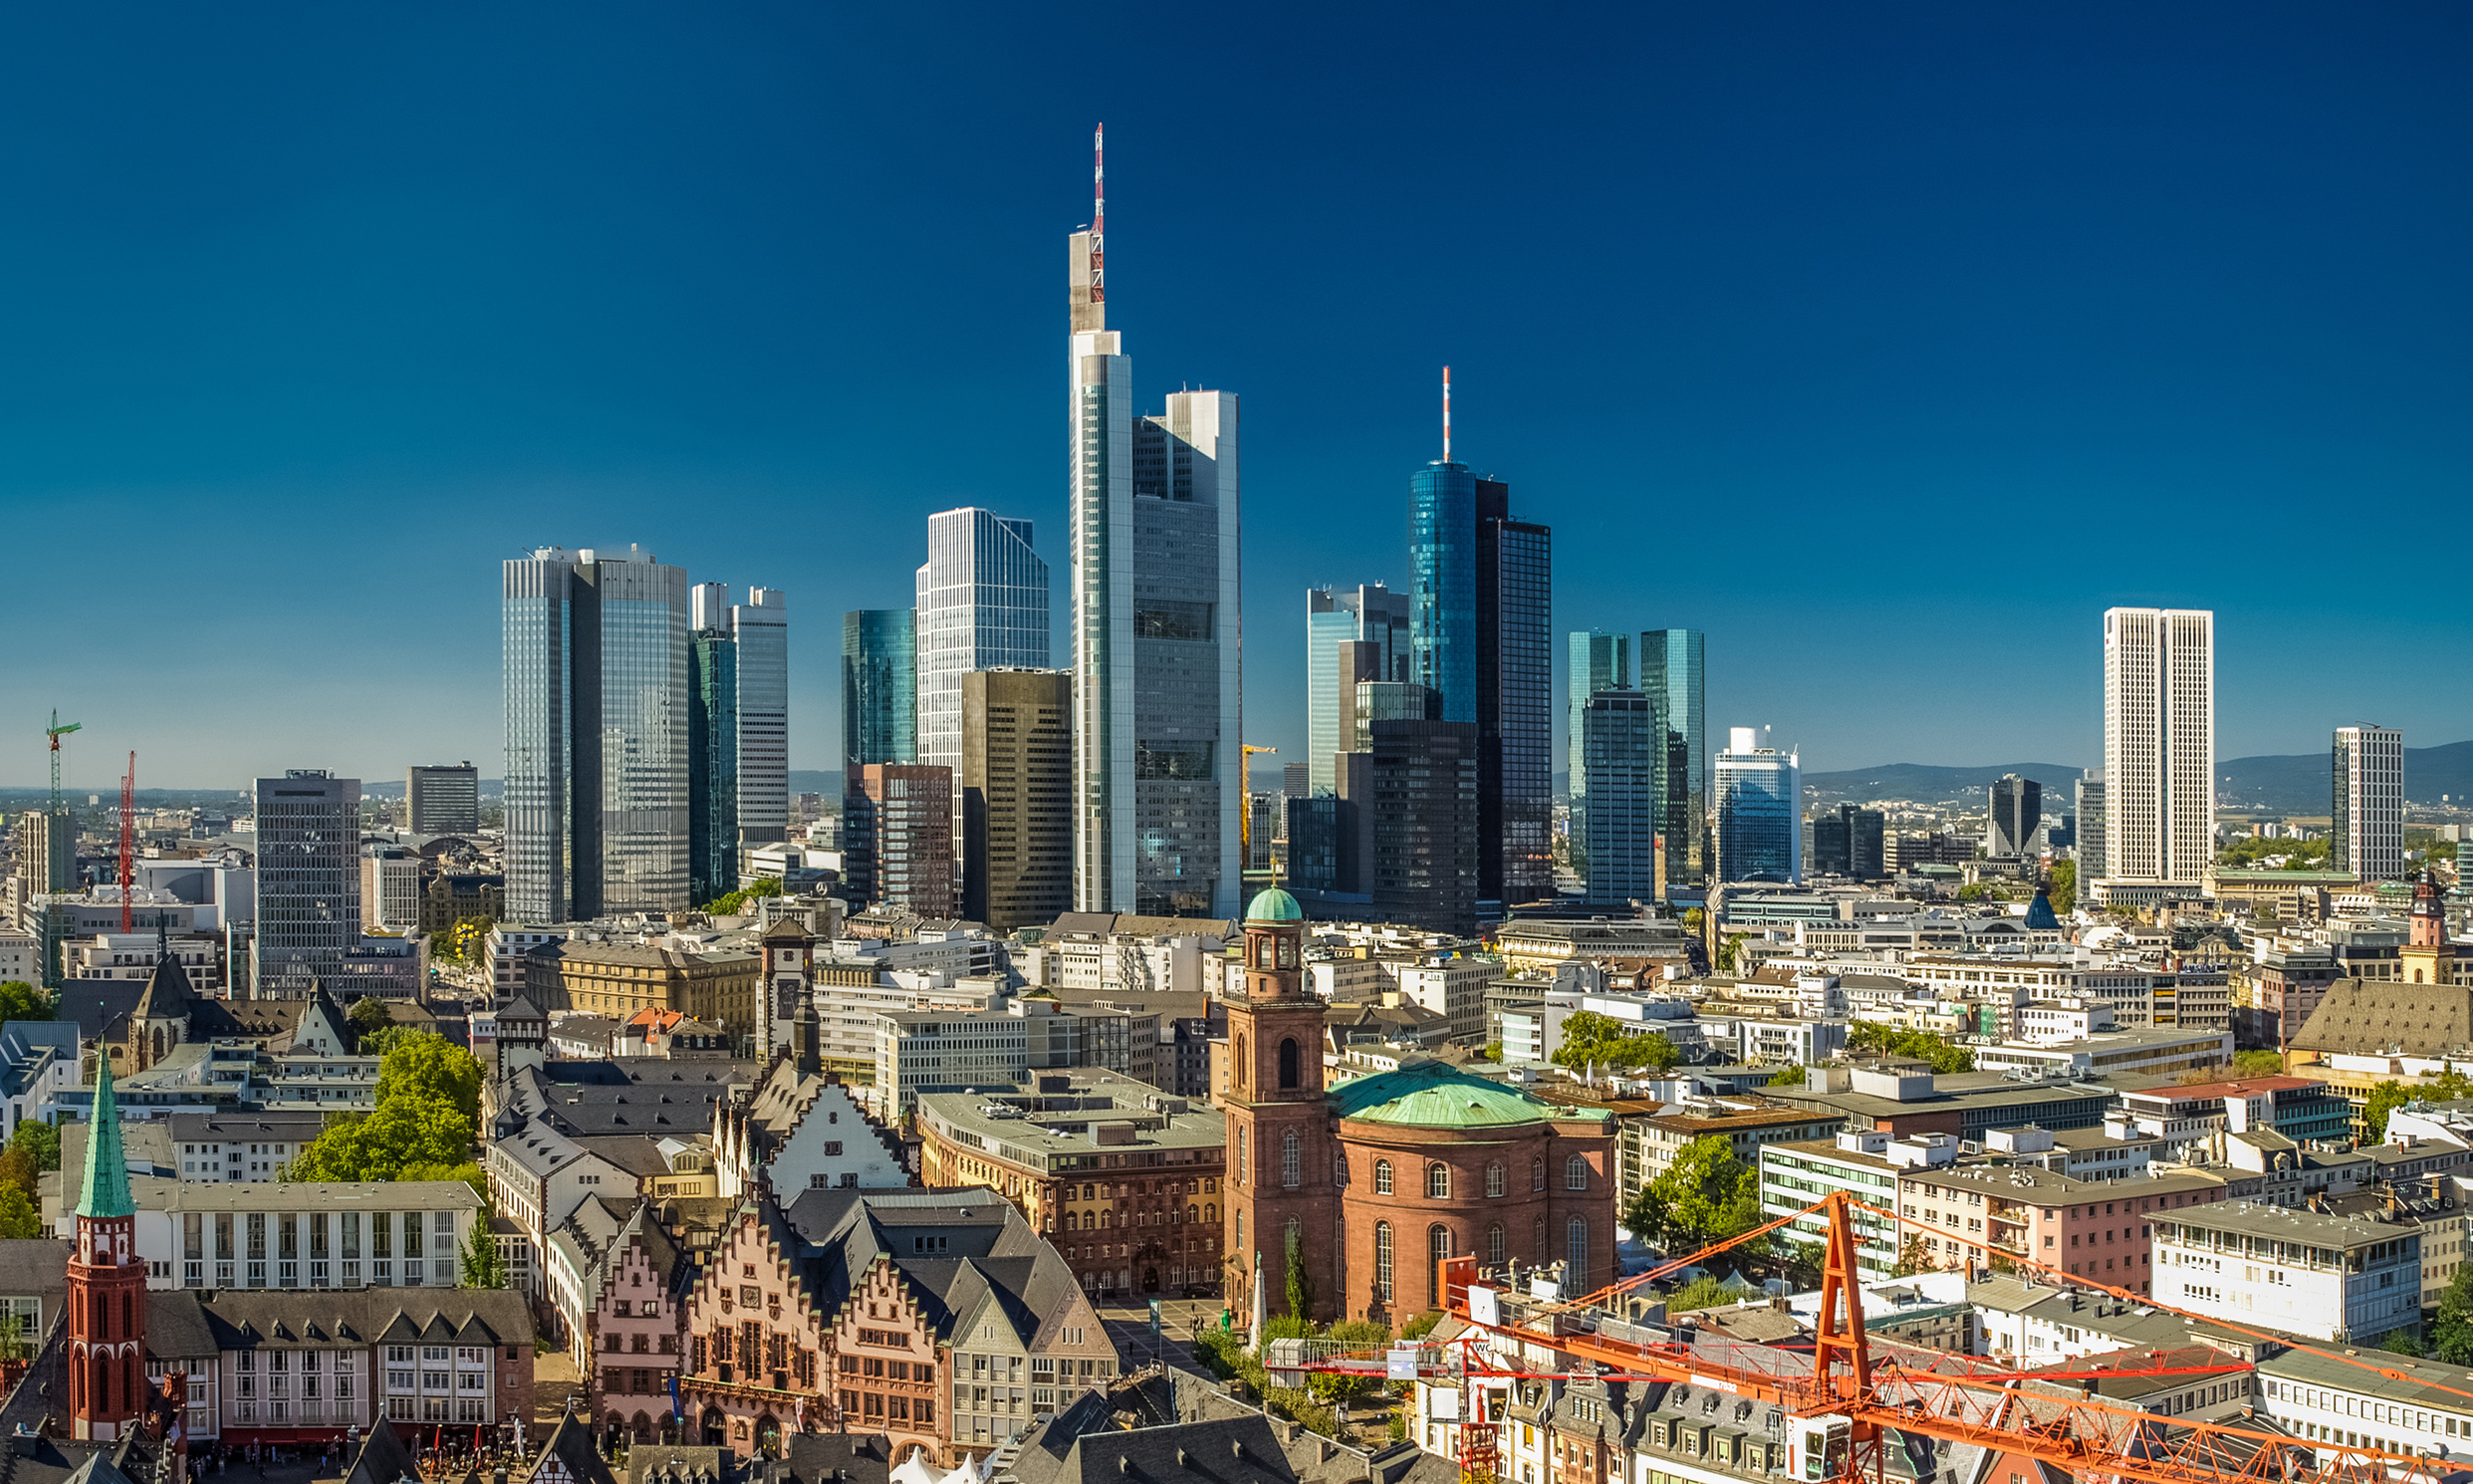 Immoforum Frankfurt 2019